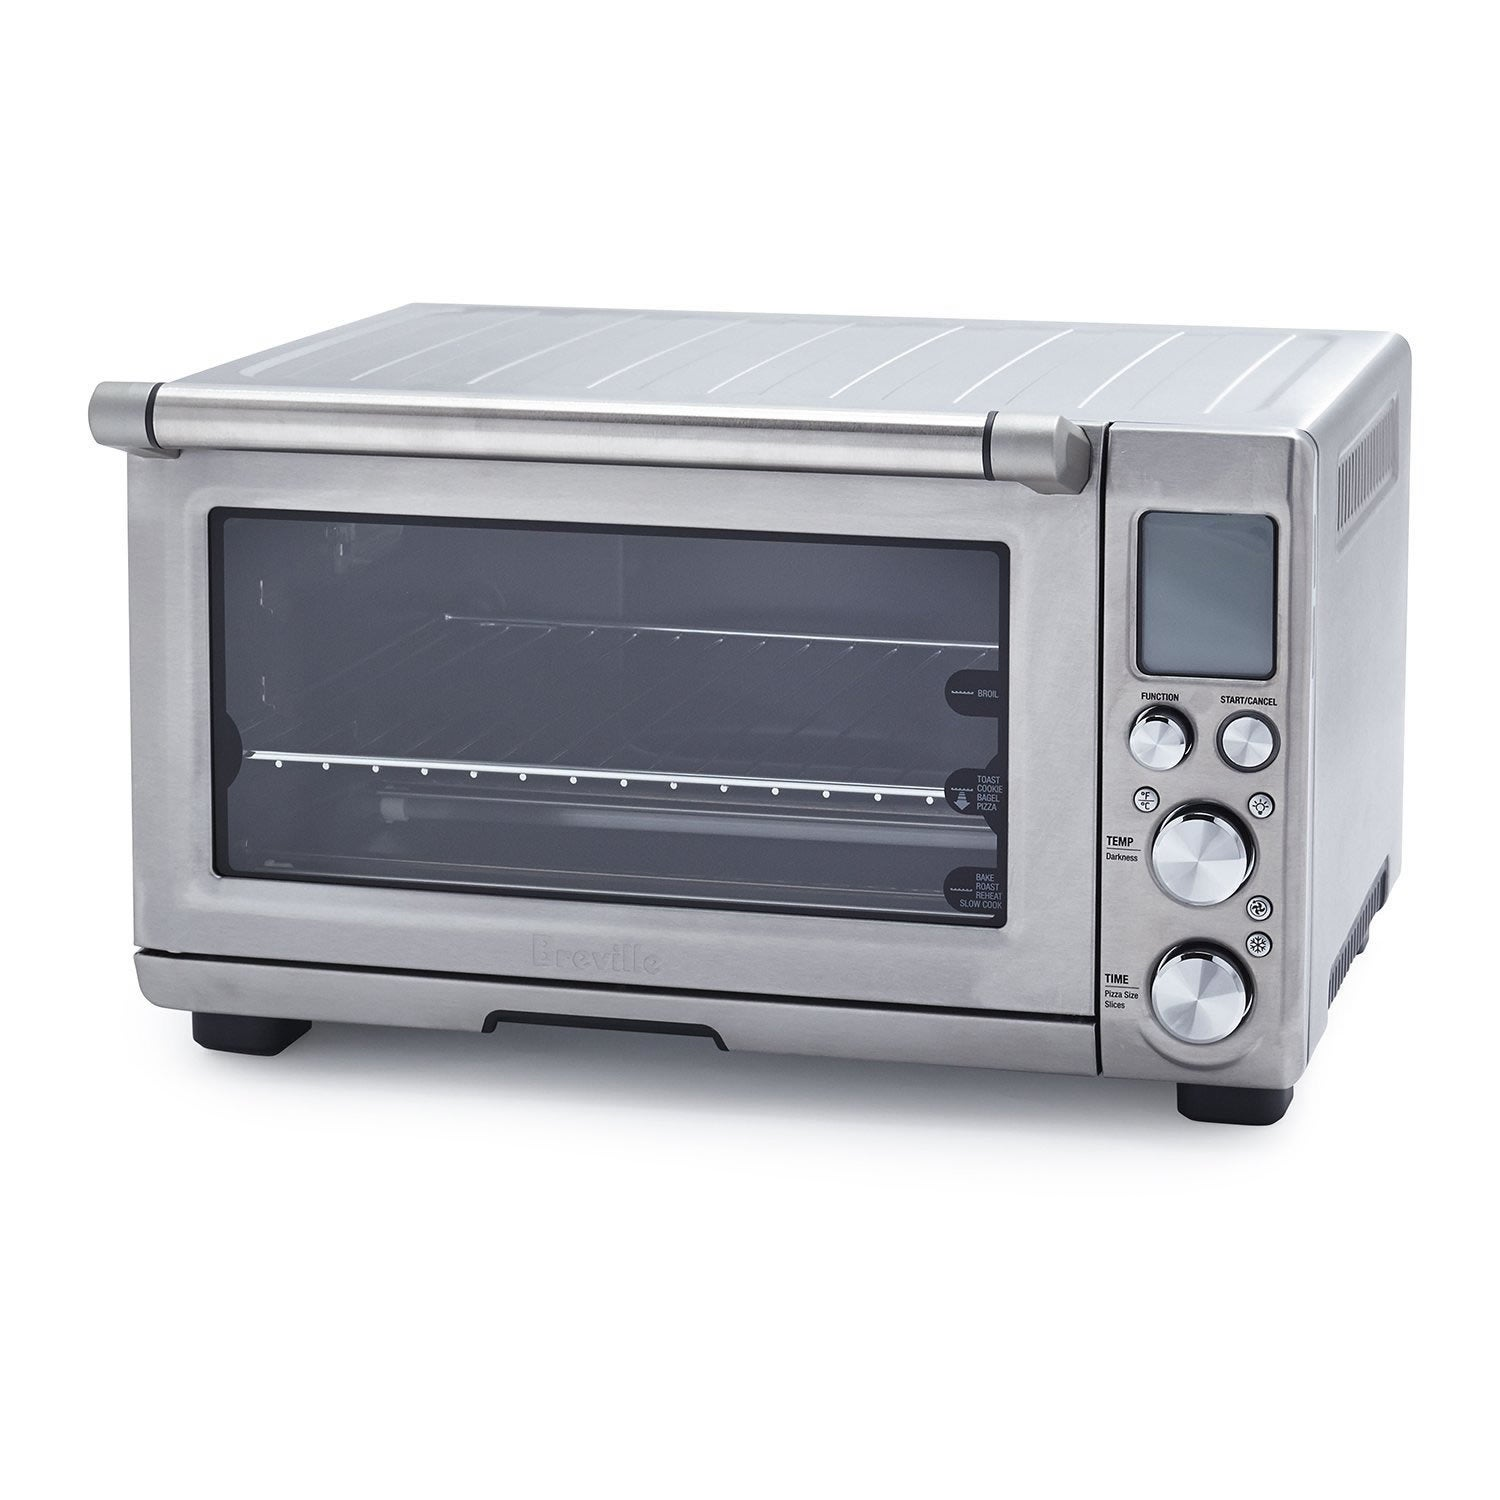 Breville BOV845BSS Smart Oven Pro Stainless Steel Digital